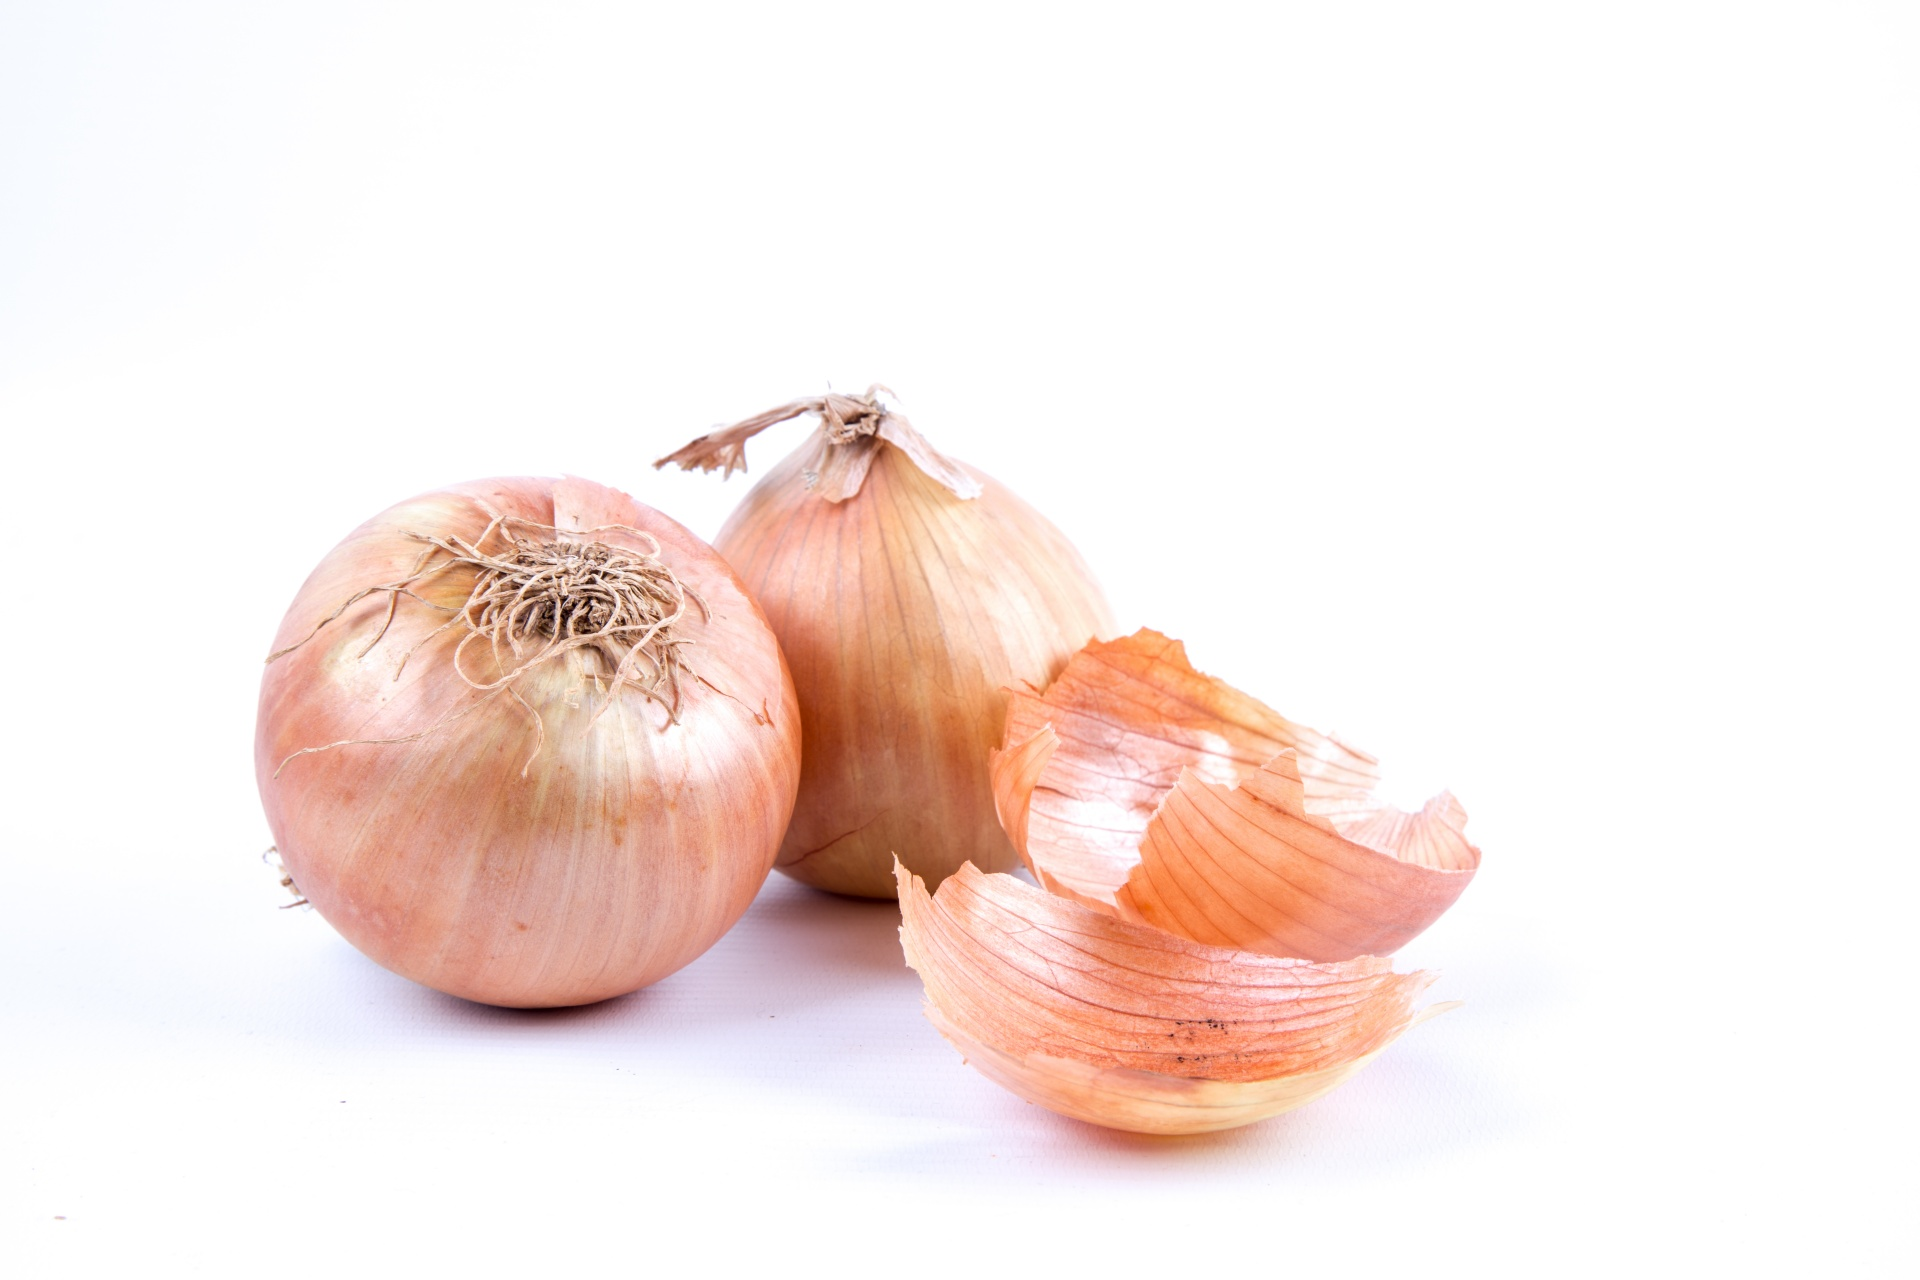 Onions For Summer: Can Carrying An Onion In Your Pocket Protect You From Heat Stroke?